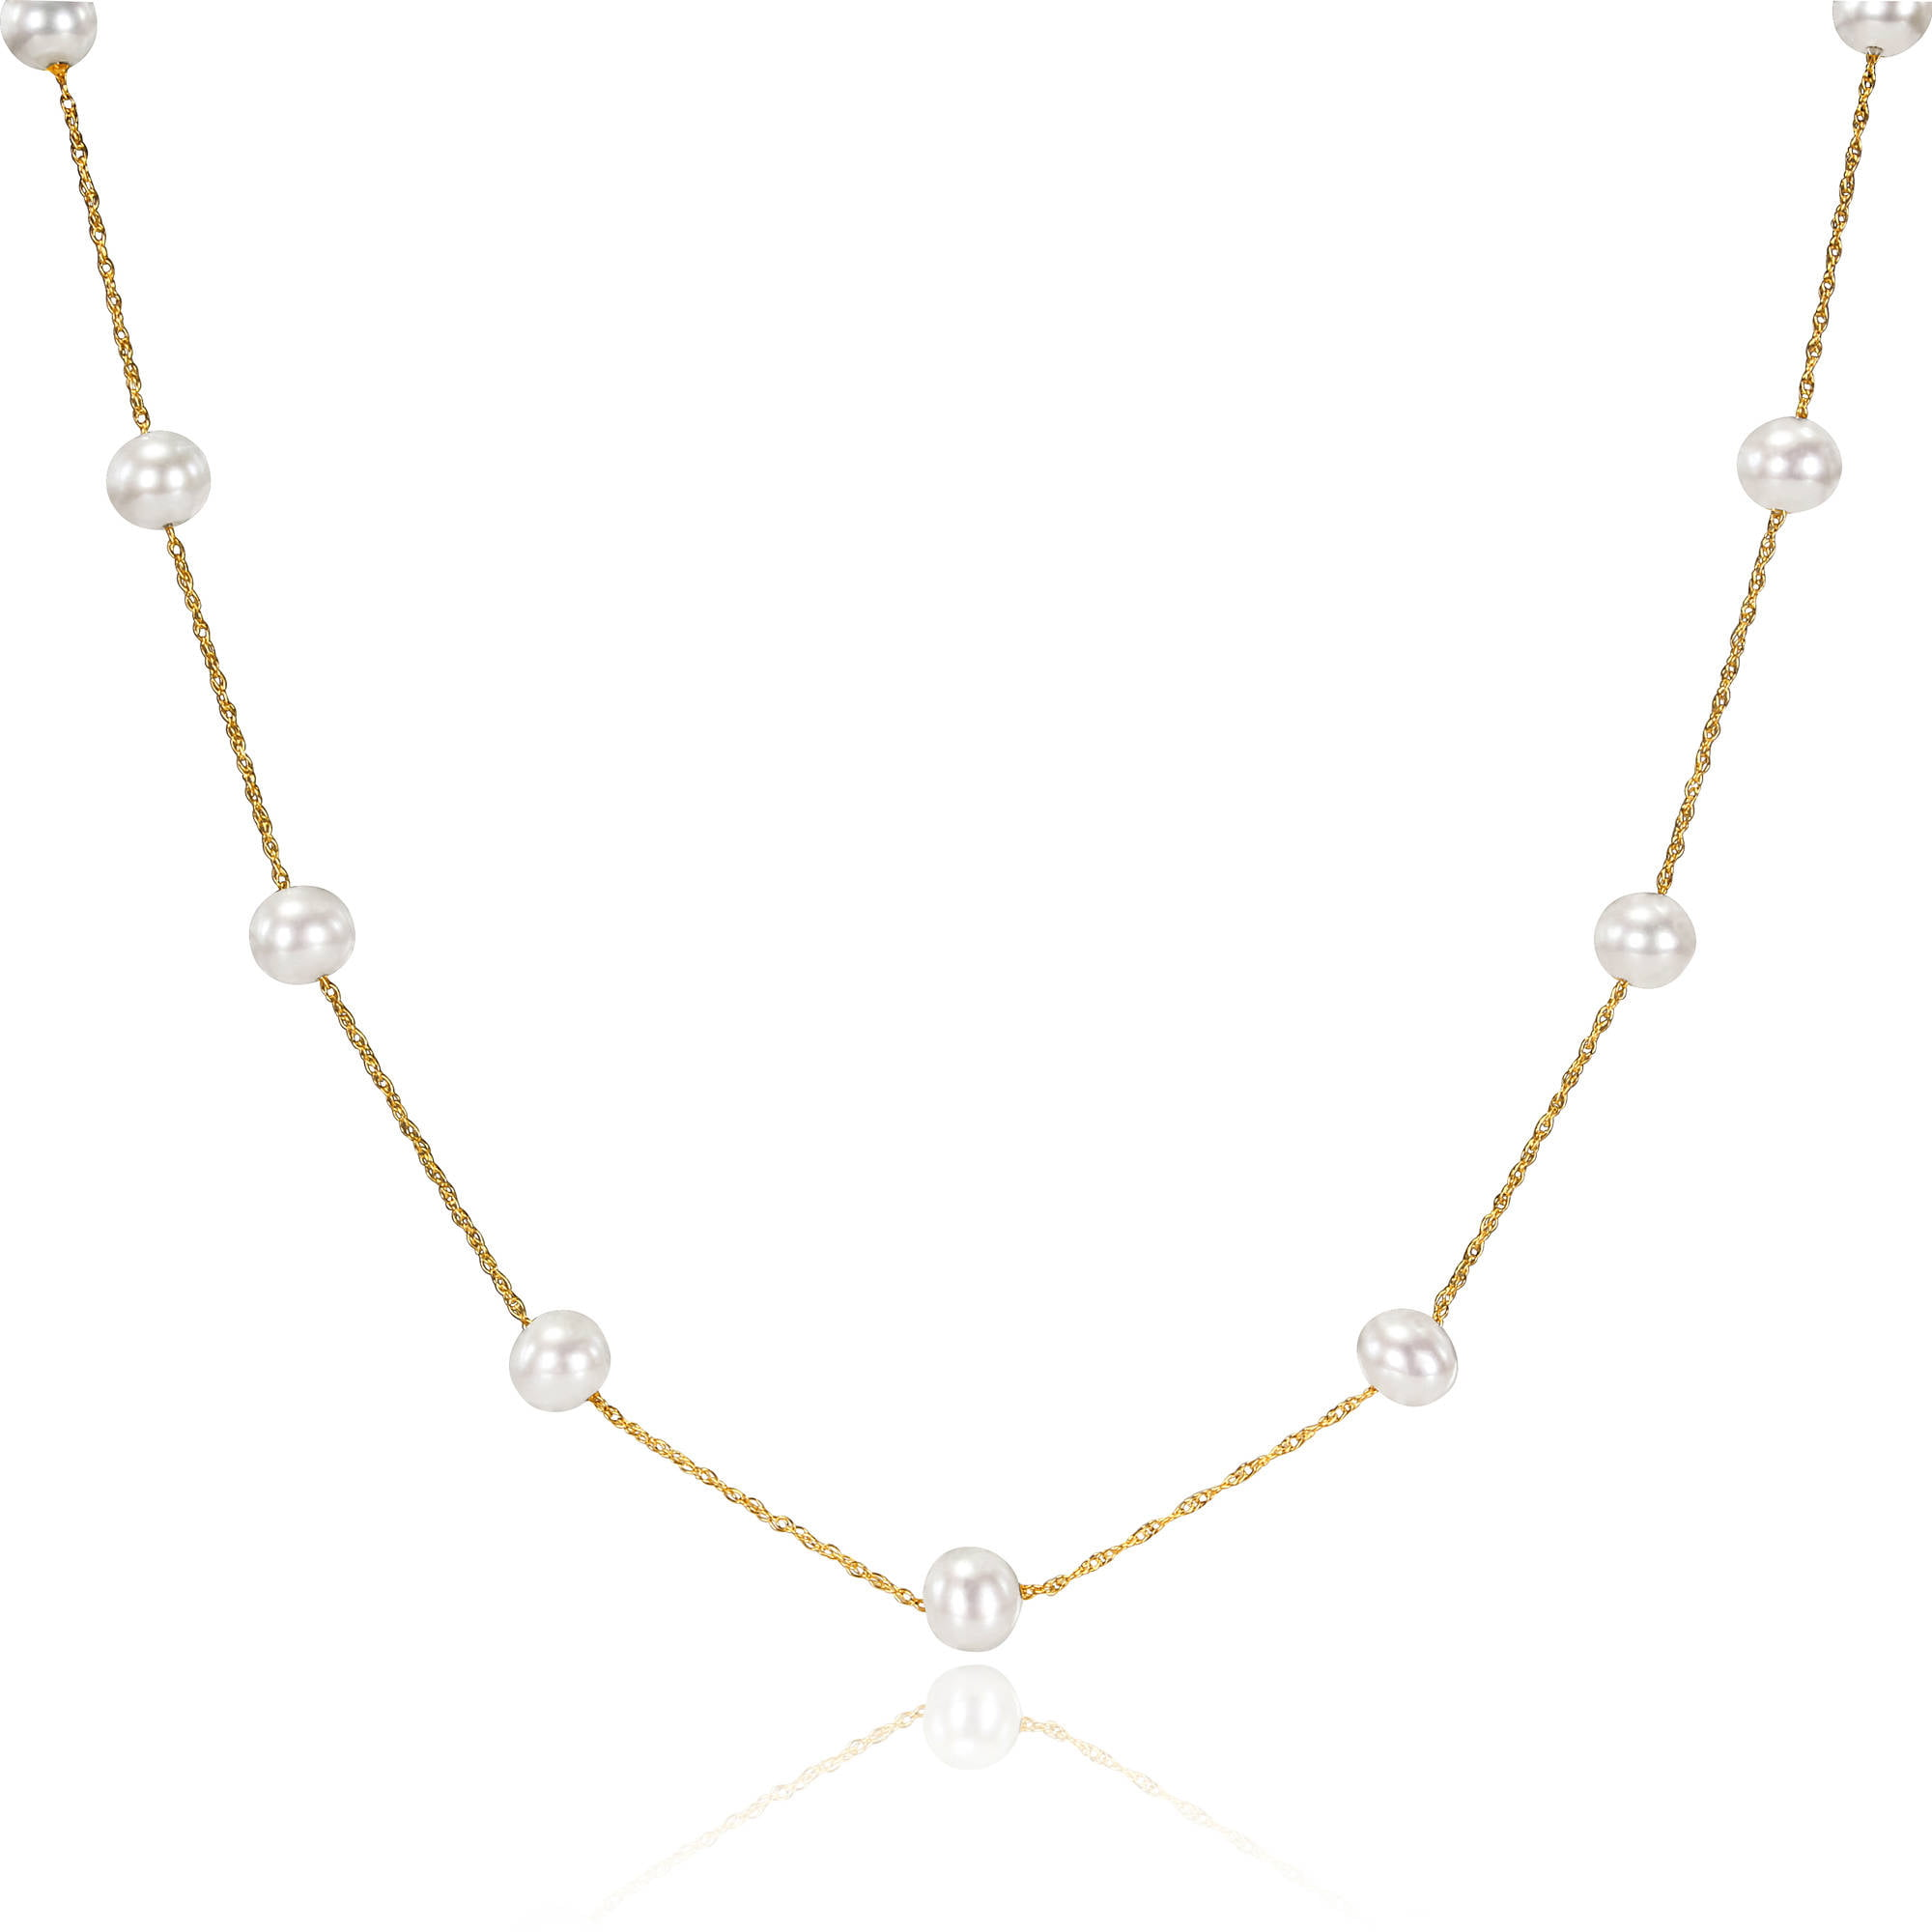 """Miabella 5.5-6mm White Freshwater Cultured Pearl 10kt Yellow Gold Tin-Cup Necklace, 17"""" by Miabella"""